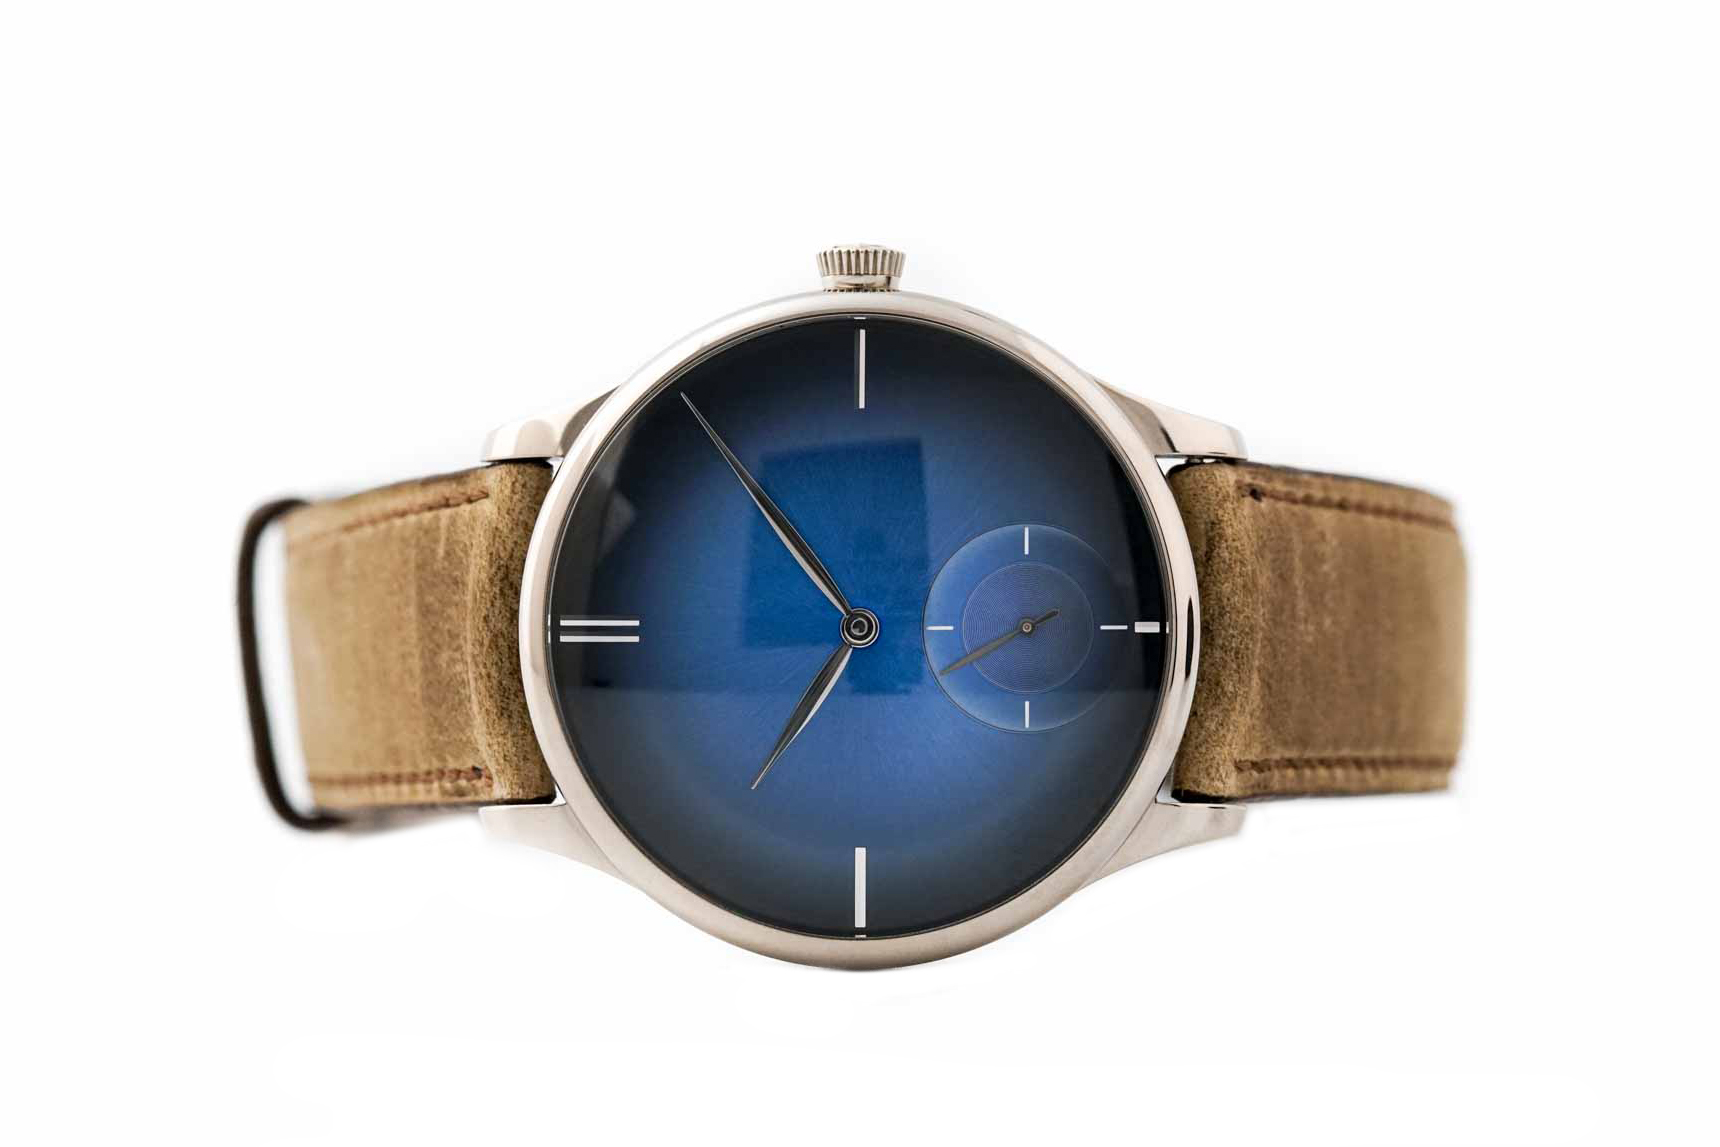 Đồng hồ H. Moser & Cie. Venturer Small Second Purity